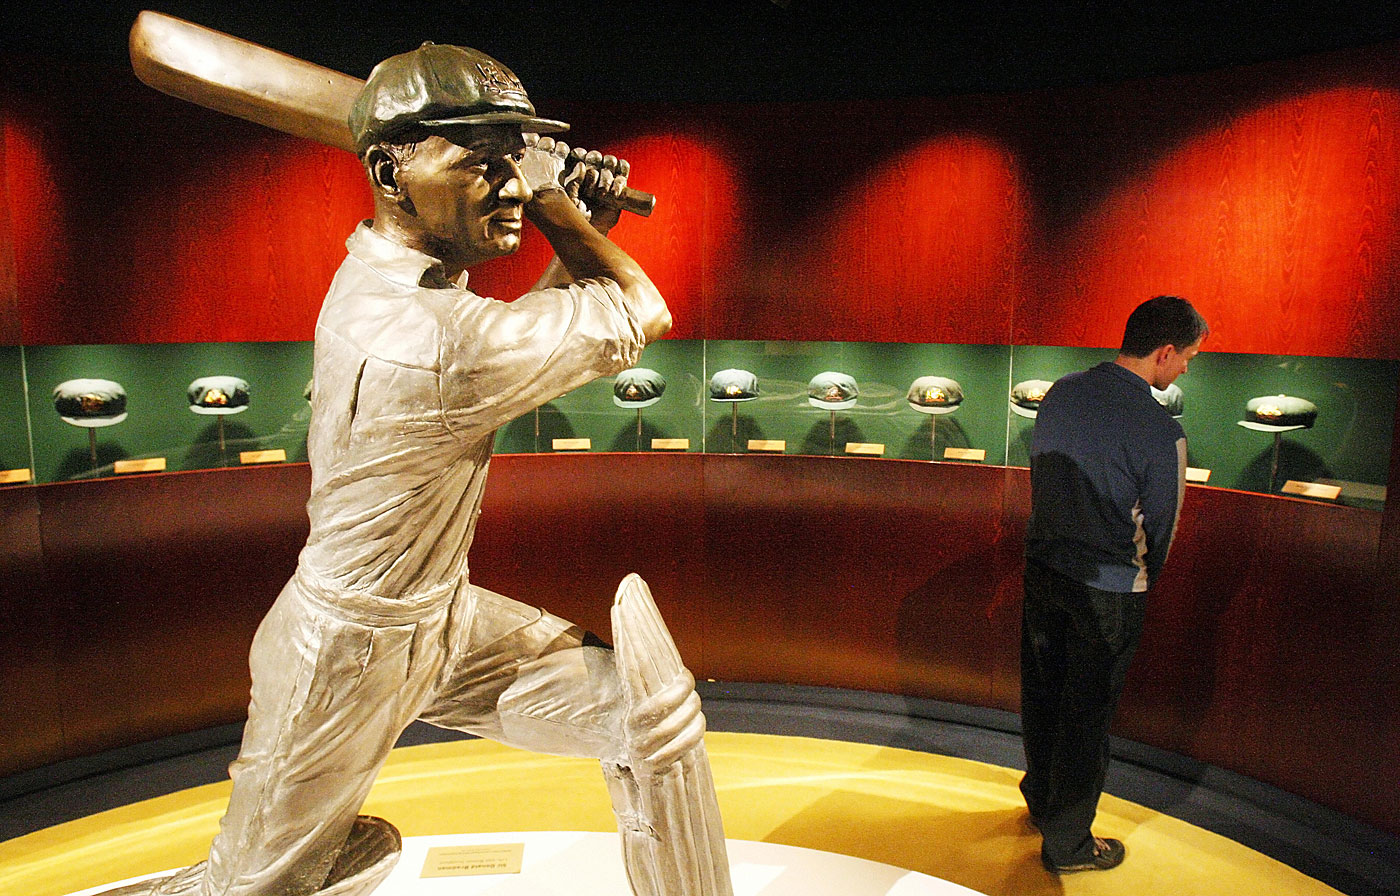 A statue of Don Bradman takes pride of place amid a display of his baggy green caps at the MCG's National Sports Museum